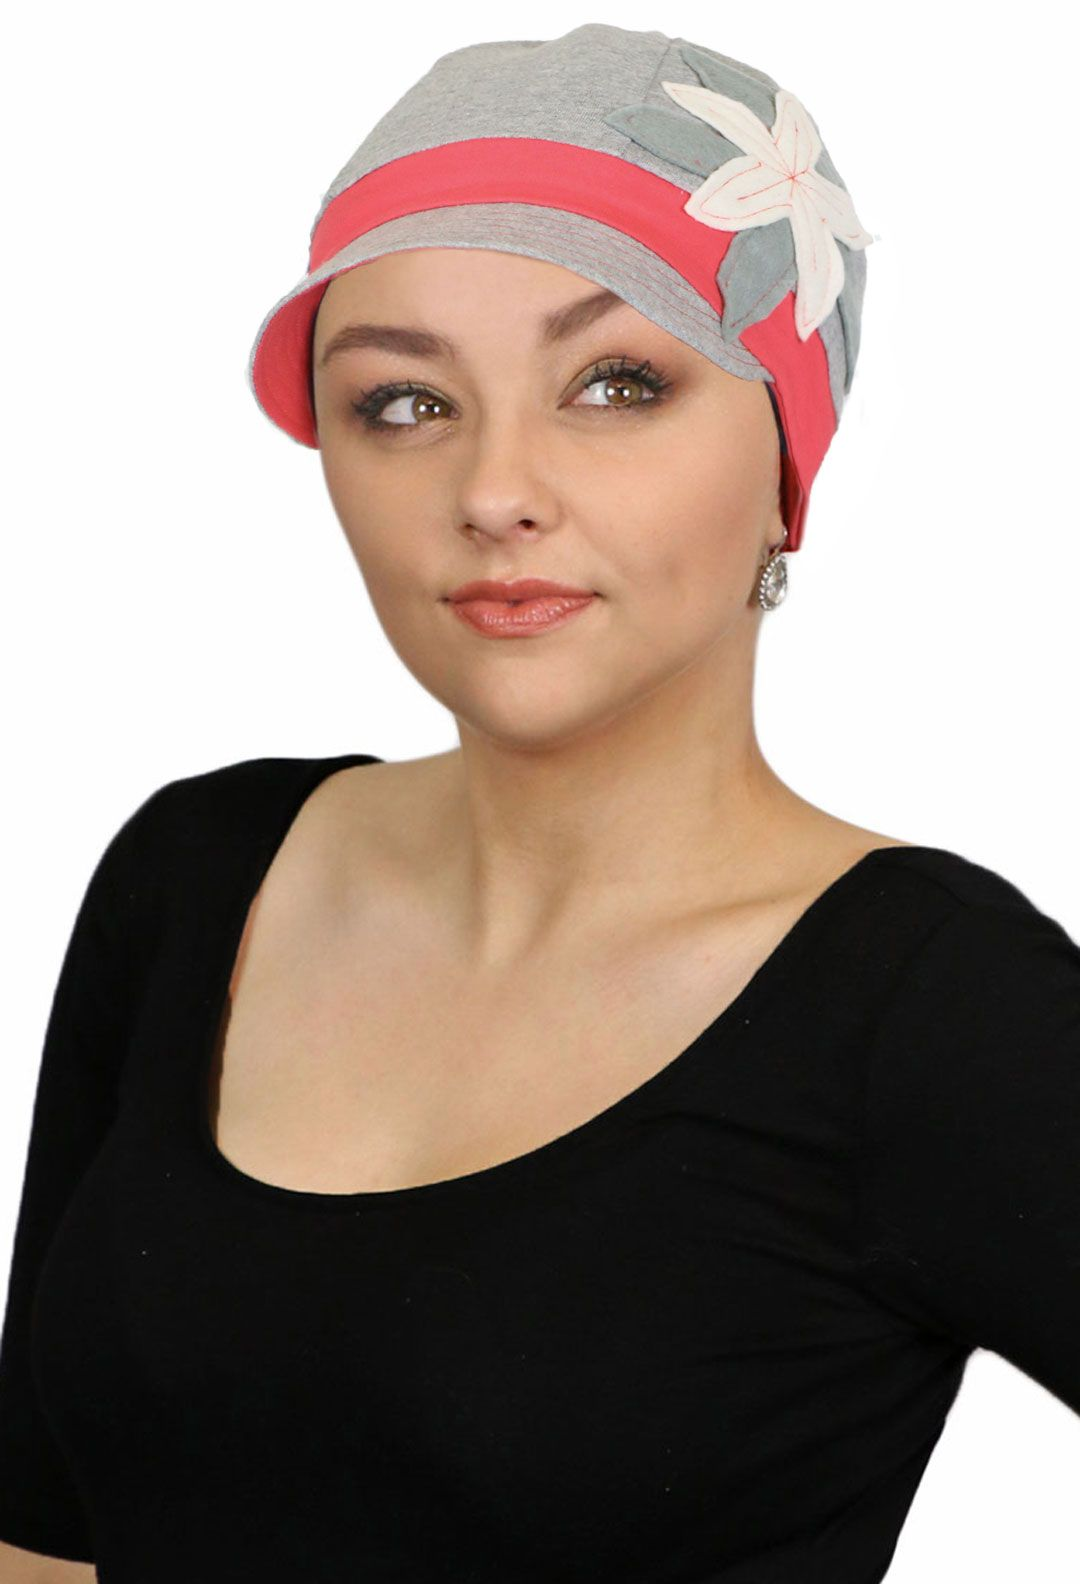 b6d8961810c2d Whimsy Copacabana Hat for cancer patients. Soft heather grey cotton trimmed  with coral band and